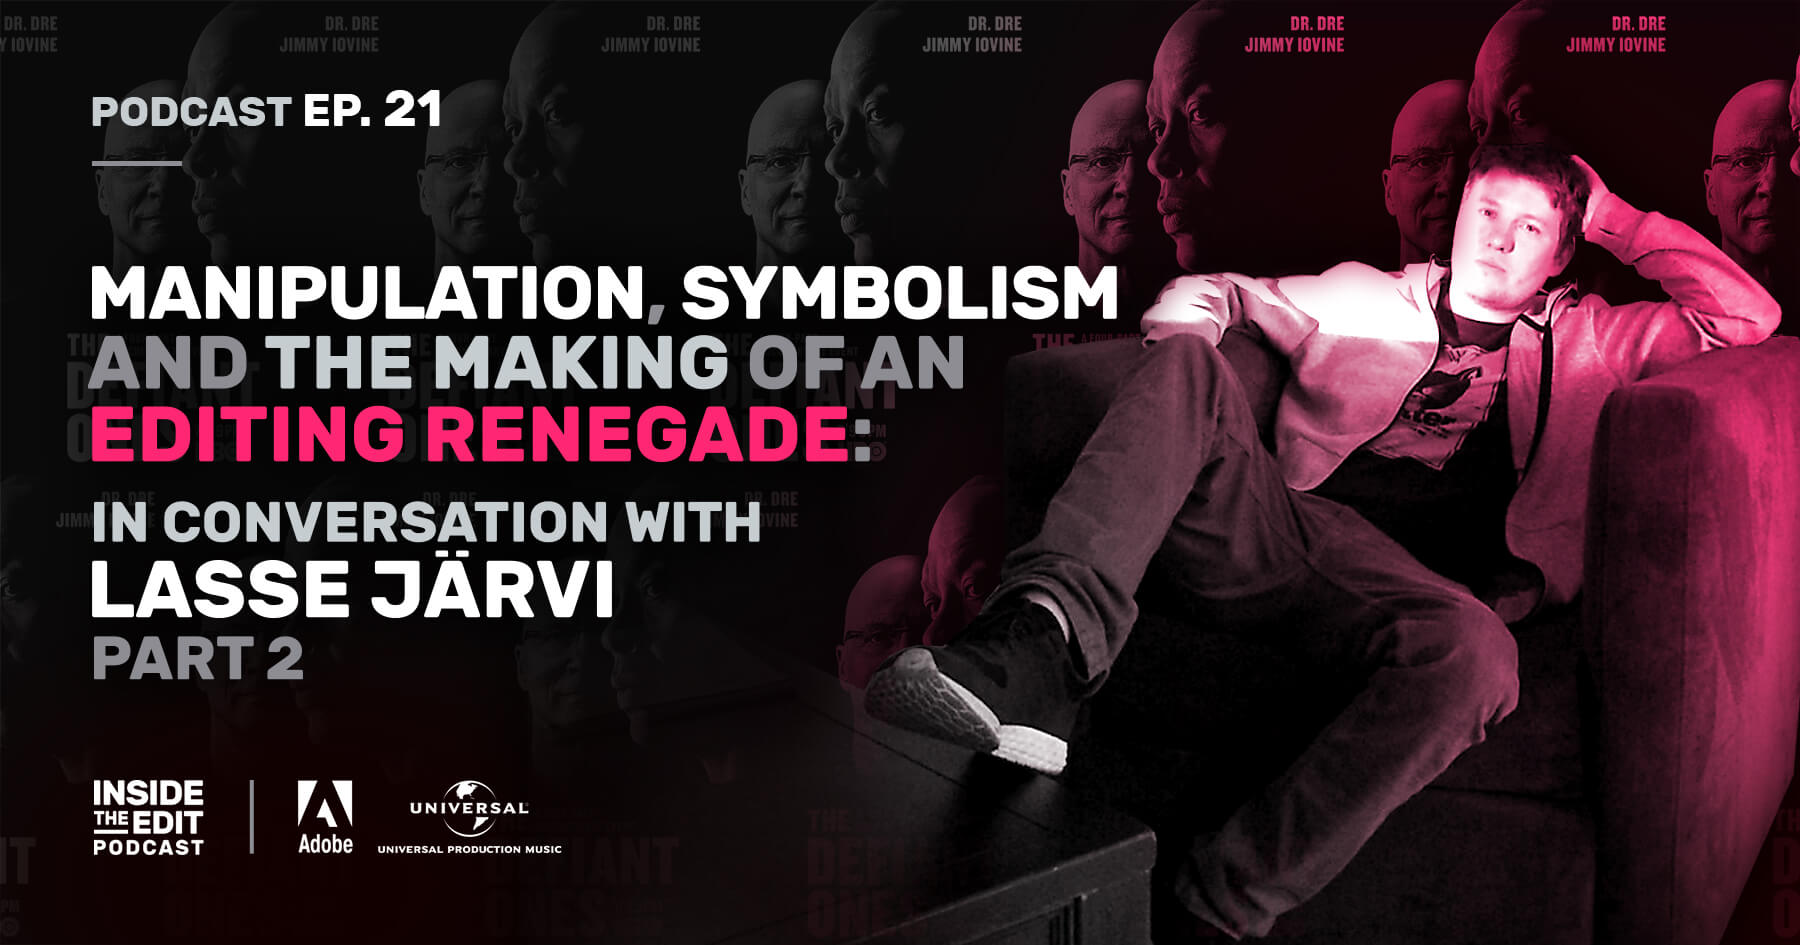 Manipulation, Symbolism and the Making of an Editing Renegade: In Conversation With Lasse Järvi Part 2